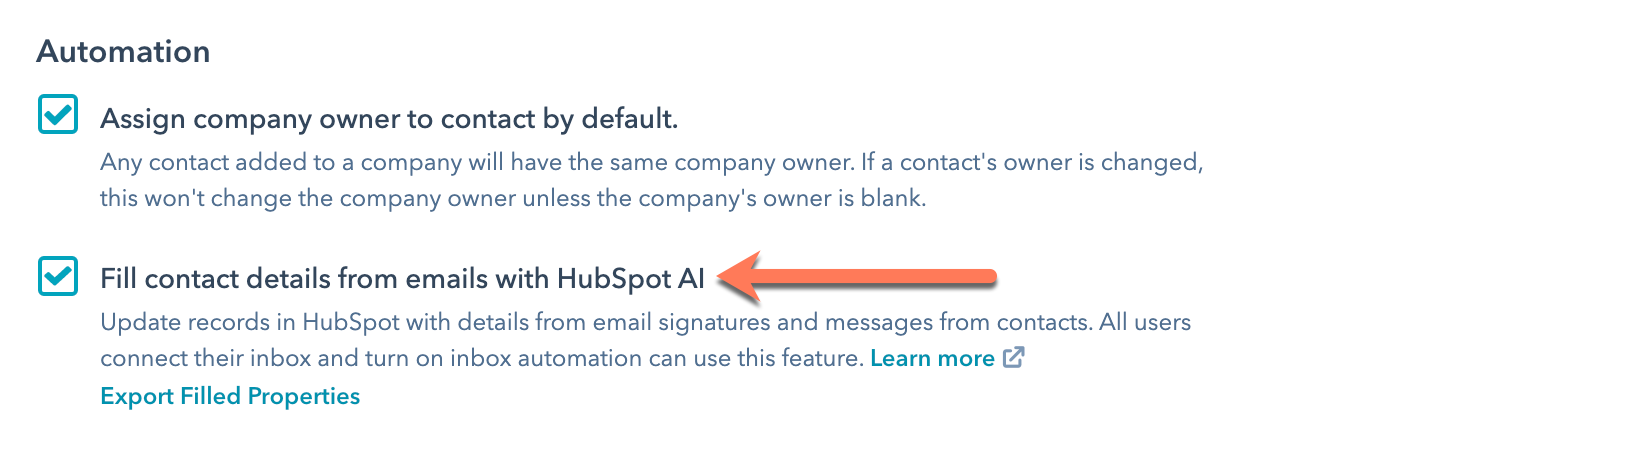 fill-contact-details-with-ai